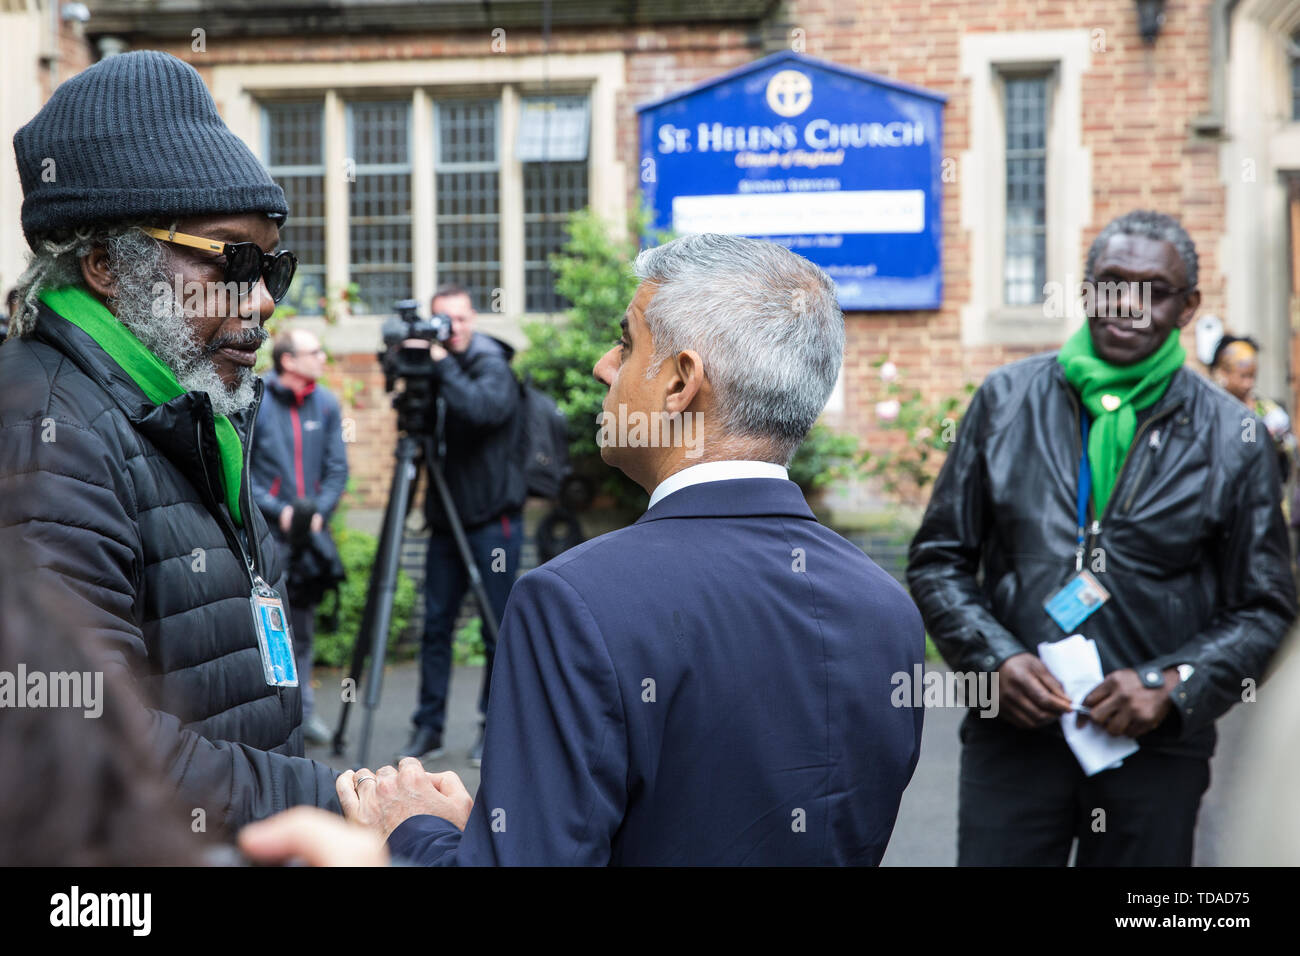 London, UK. 14 June, 2019. Mayor of London Sadiq Khan arrives to attend a memorial service at St Helen's Church to mark the second anniversary of the Grenfell Tower fire on 14th June 2017 in which at least 72 people died and over 70 were injured. Credit: Mark Kerrison/Alamy Live News - Stock Image